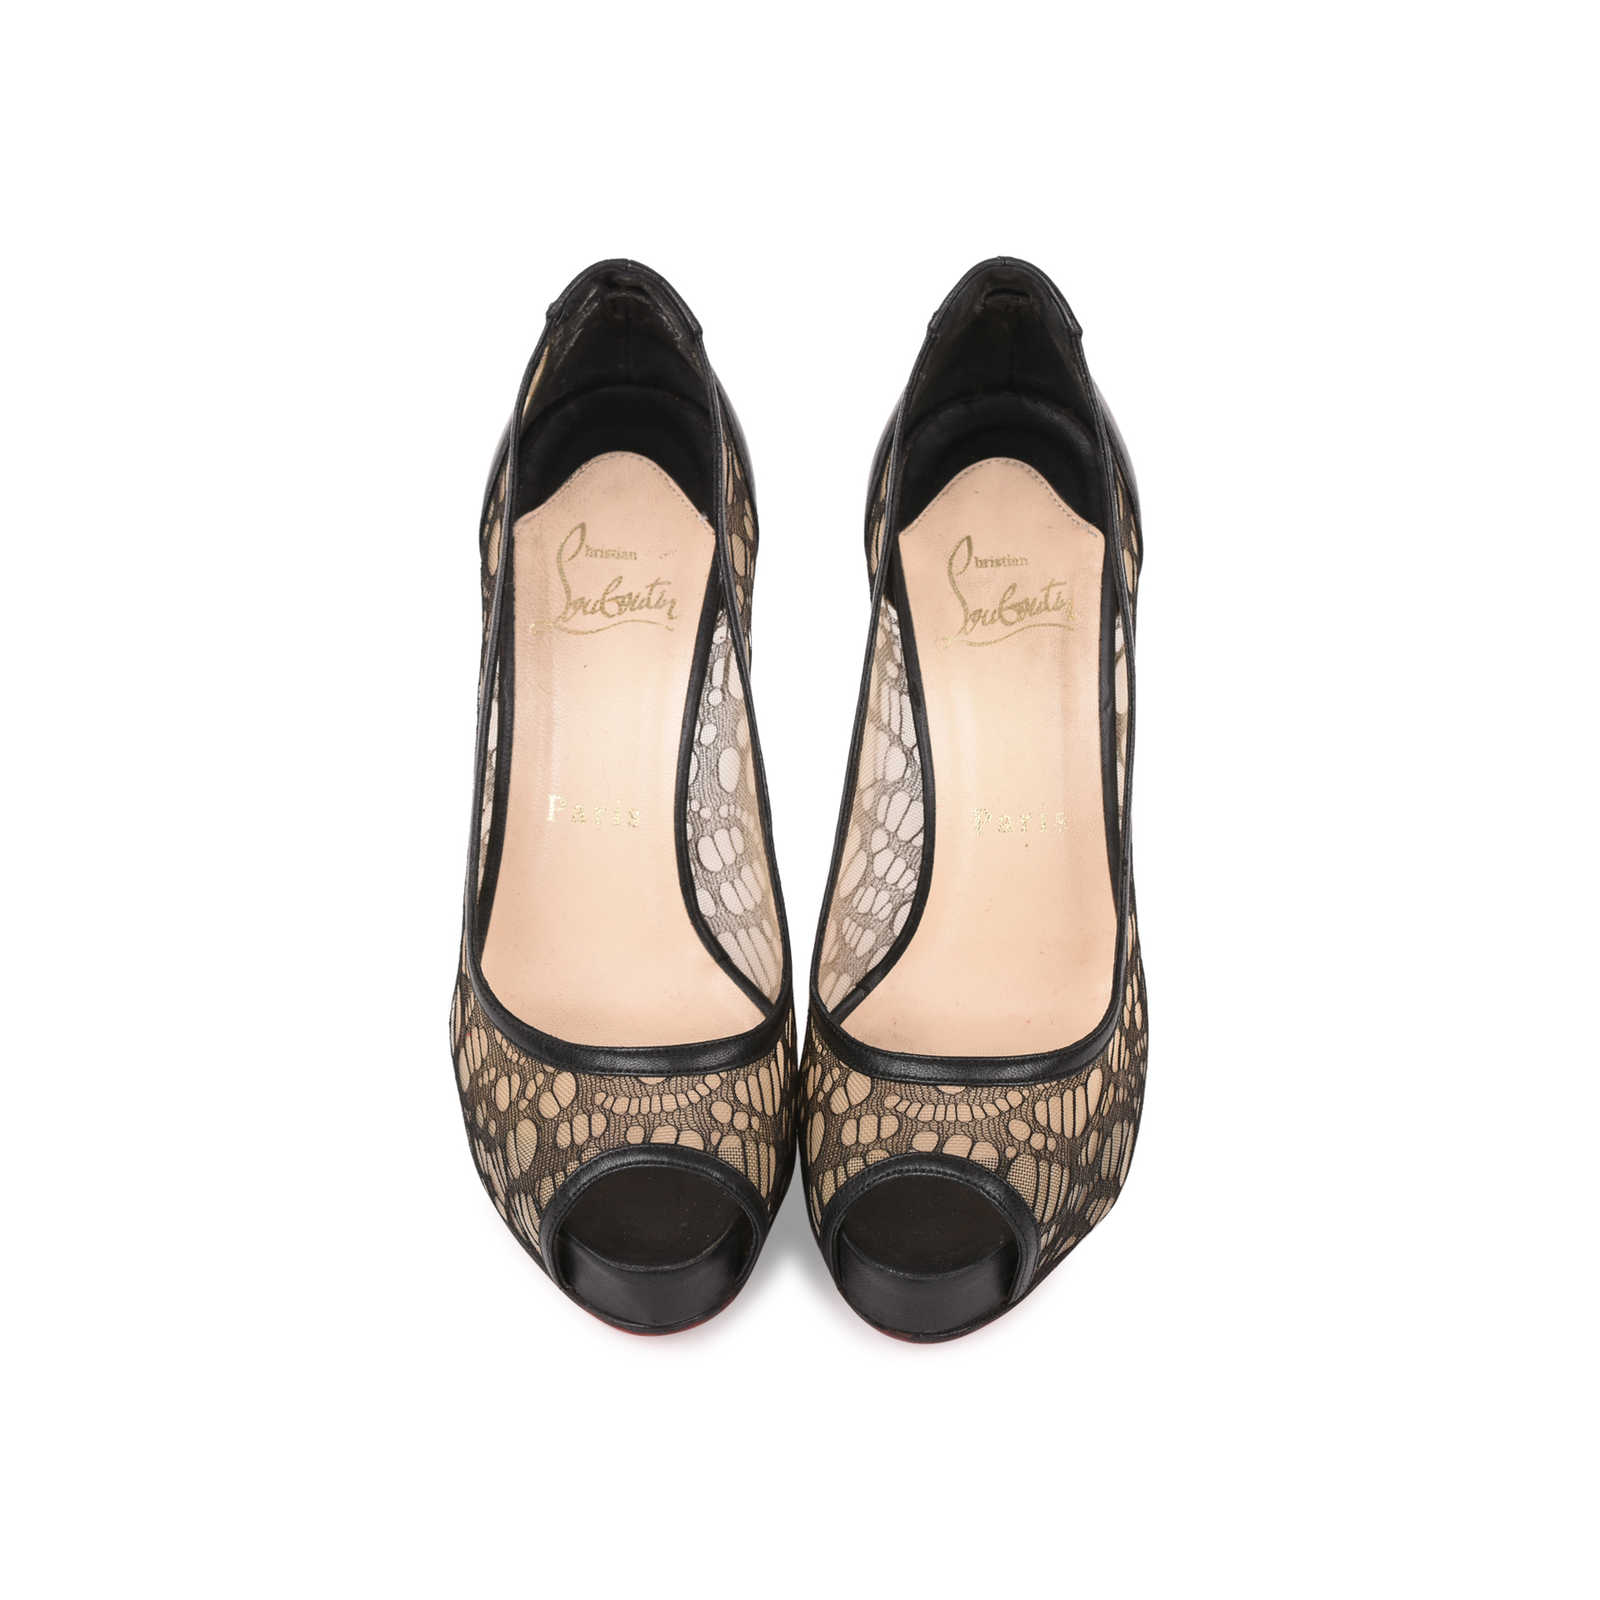 new arrival 26fac e4d8e Authentic Second Hand Christian Louboutin Very Lace Peep Toe ...